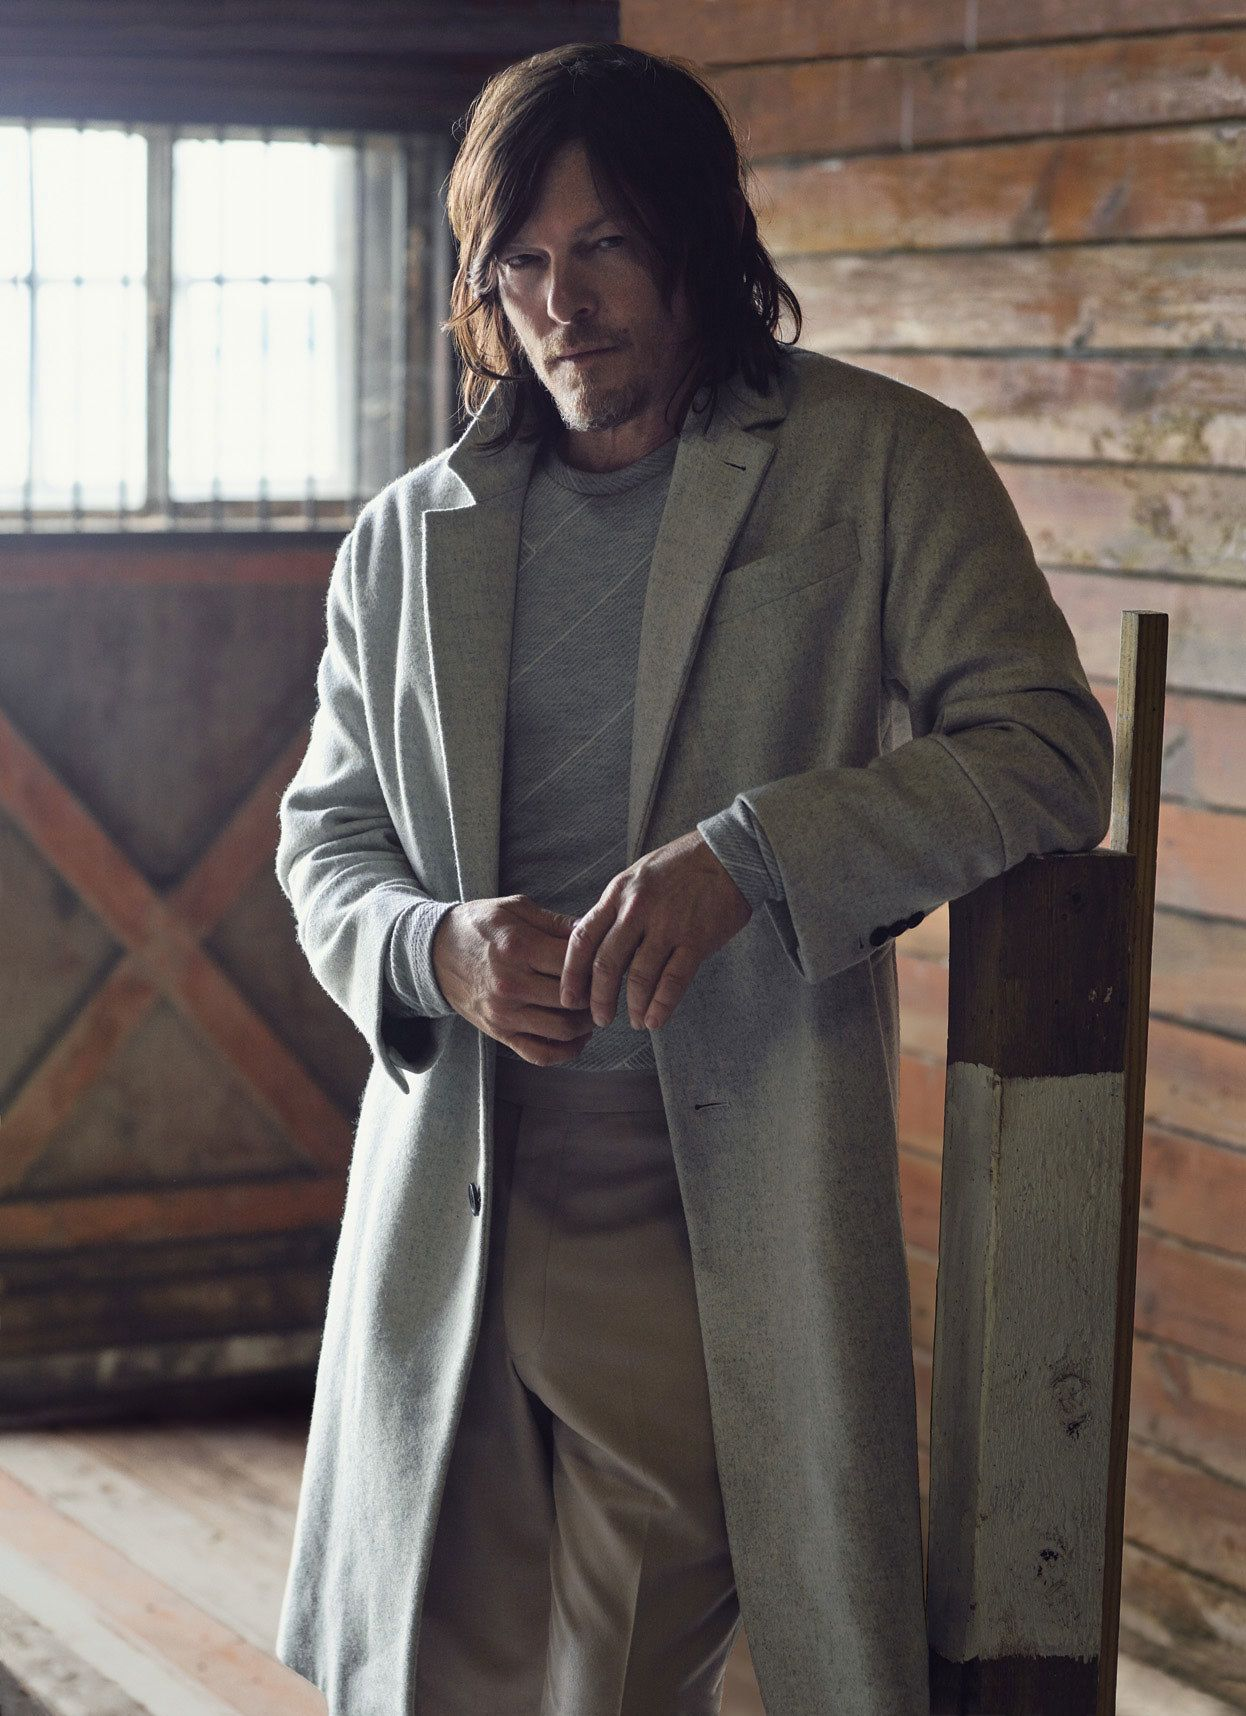 the improbable rise of the walking dead s norman reedus the o interview the walking dead star norman reedus details